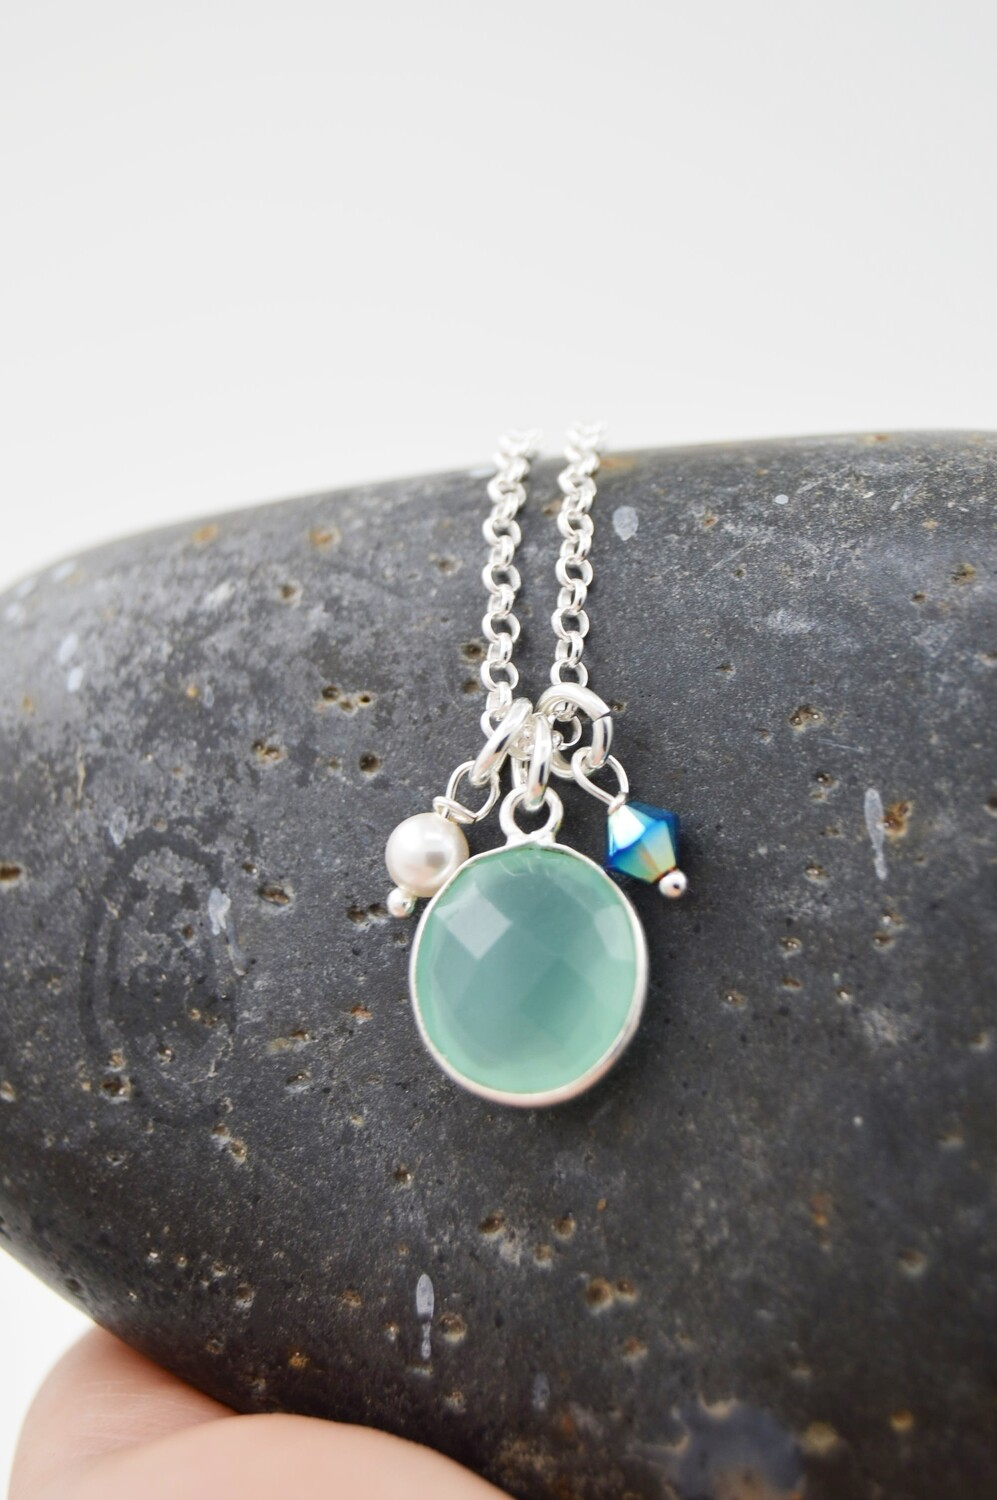 Silver Aqua Chalcedony Gemstone Necklace with Swarovski Charms (matching earring option)